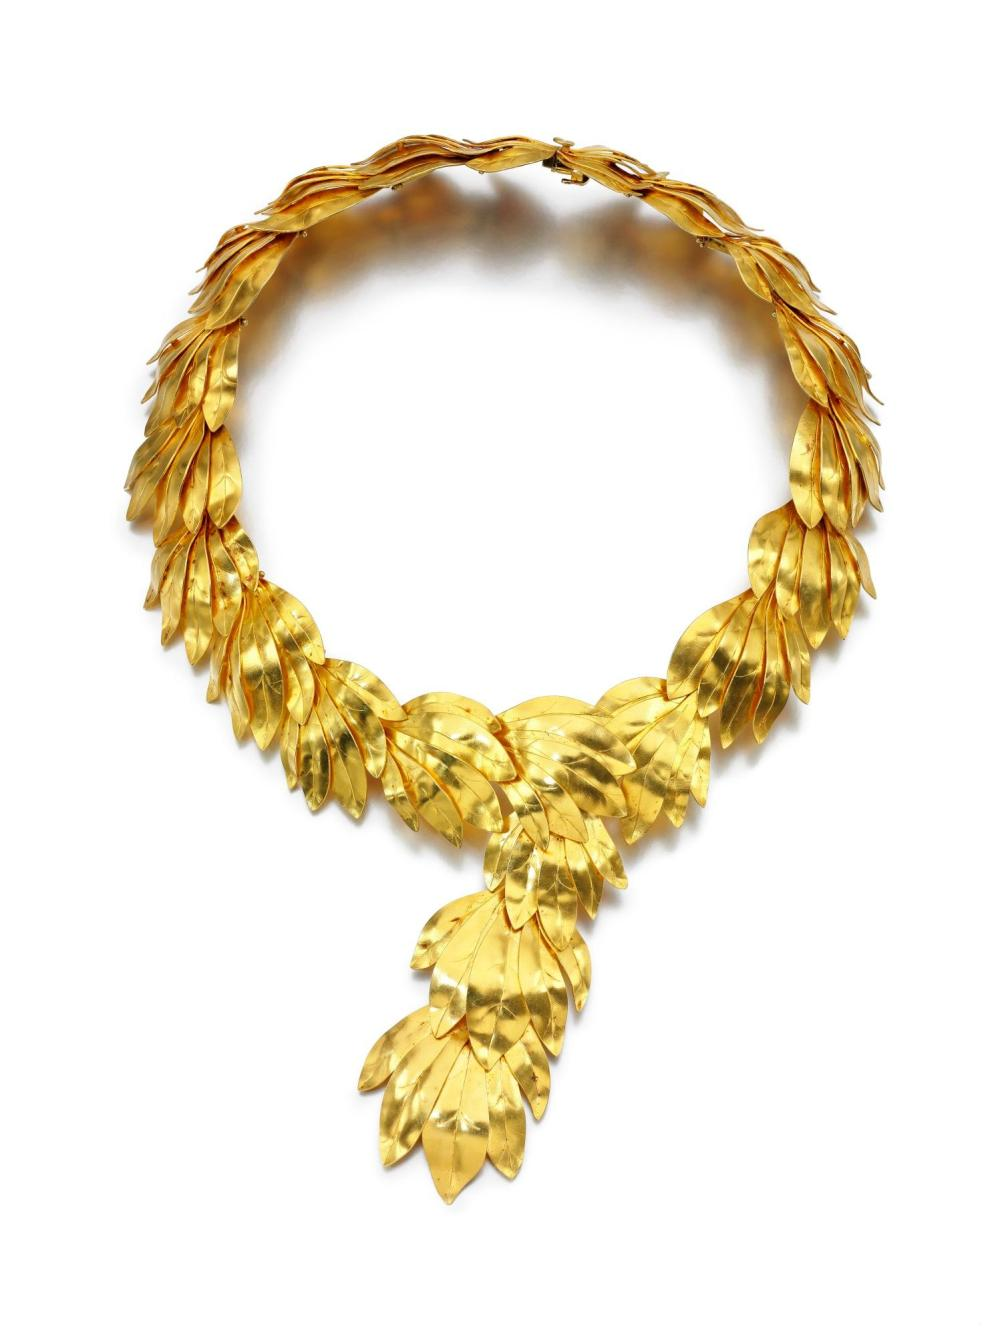 NECKLACE, ZOLOTAS